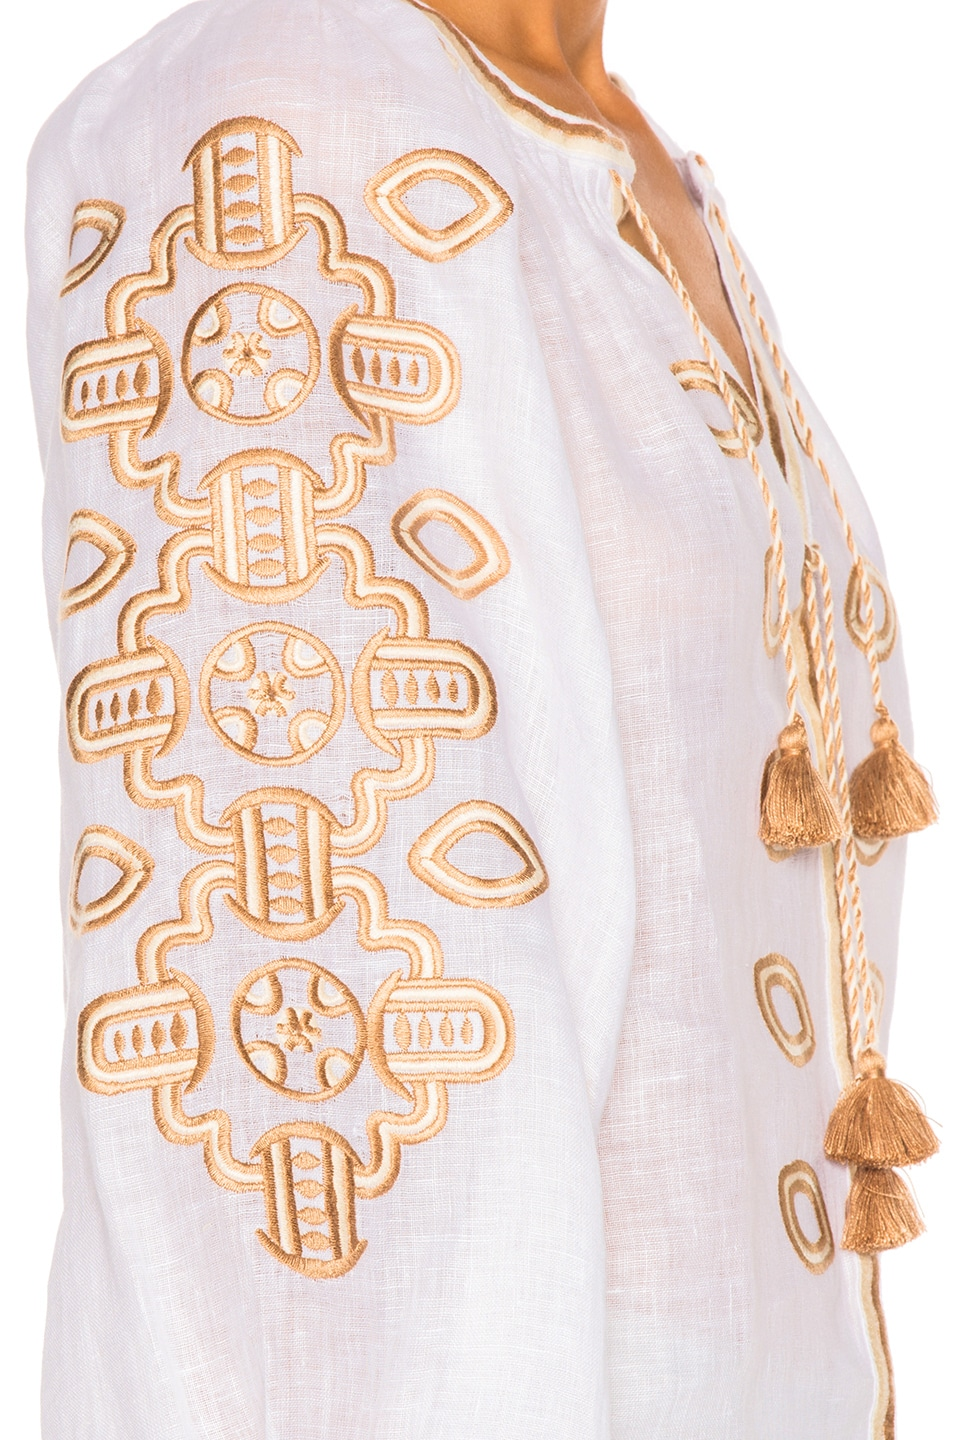 Image 6 of March 11 African Embroidered Top in Tan & White